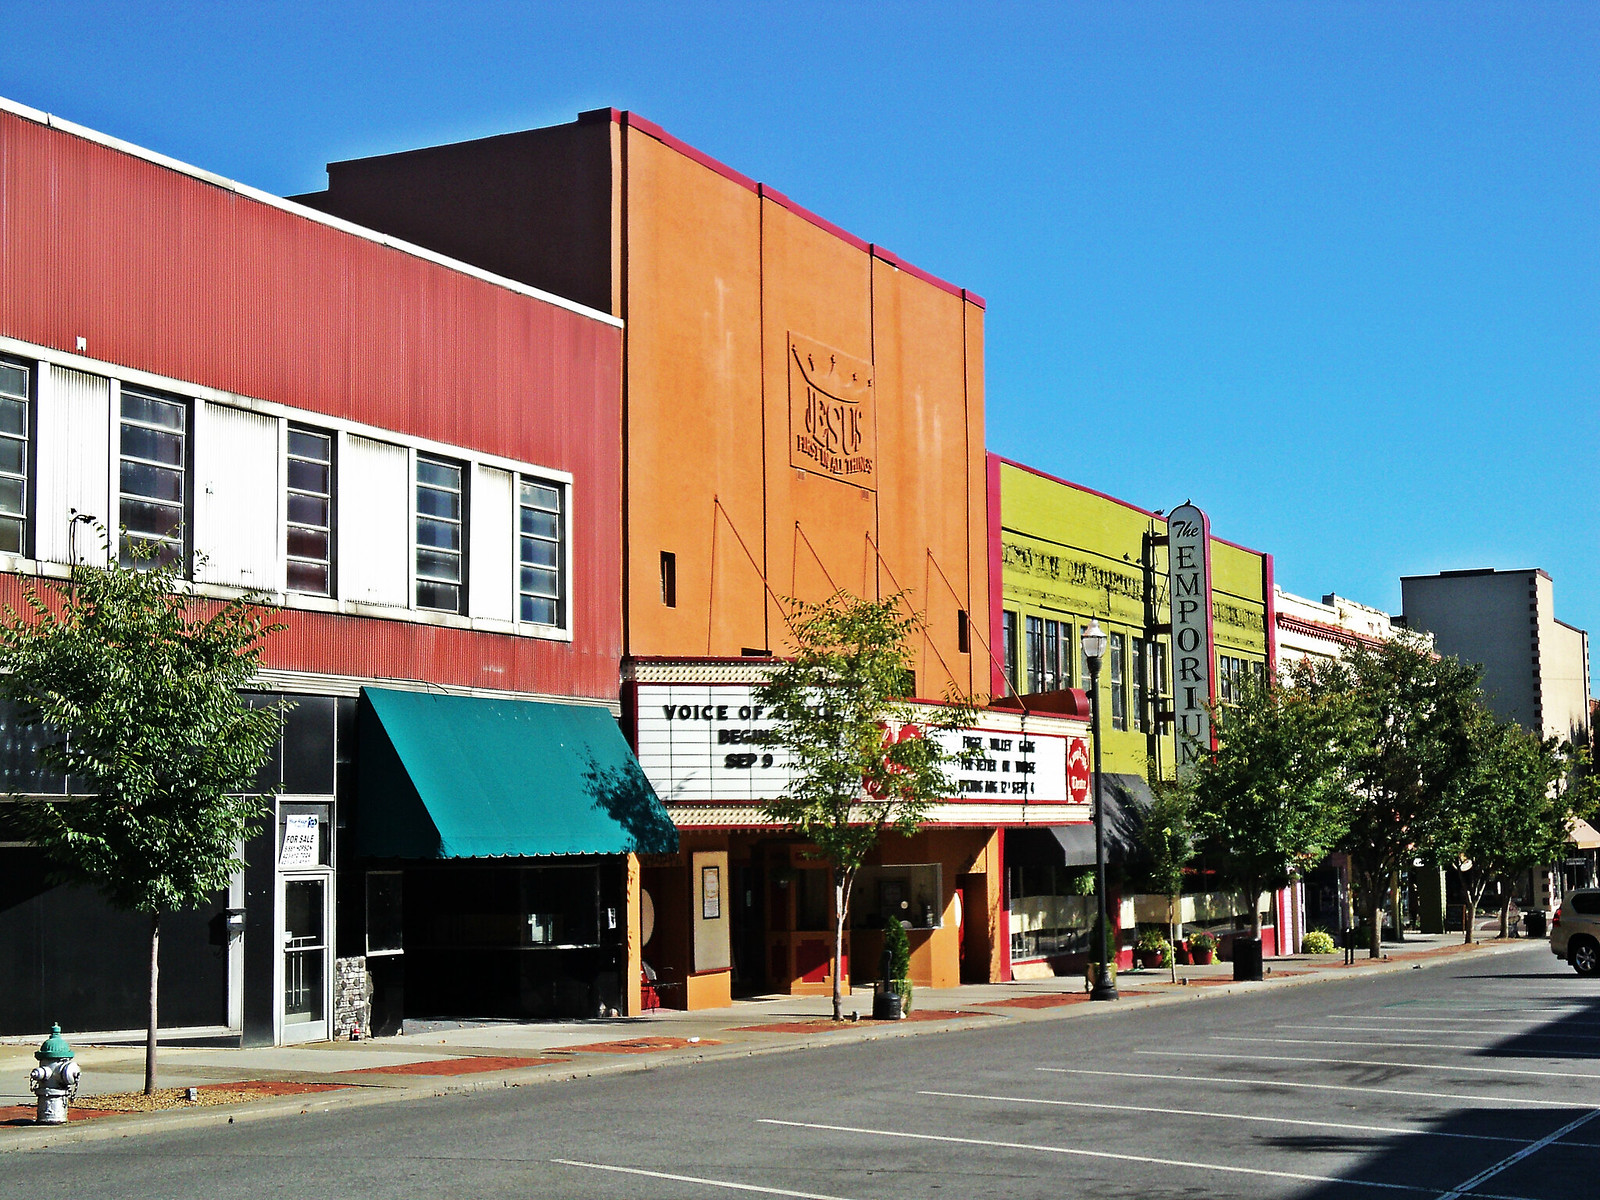 Downtown Kingsport, Tennessee